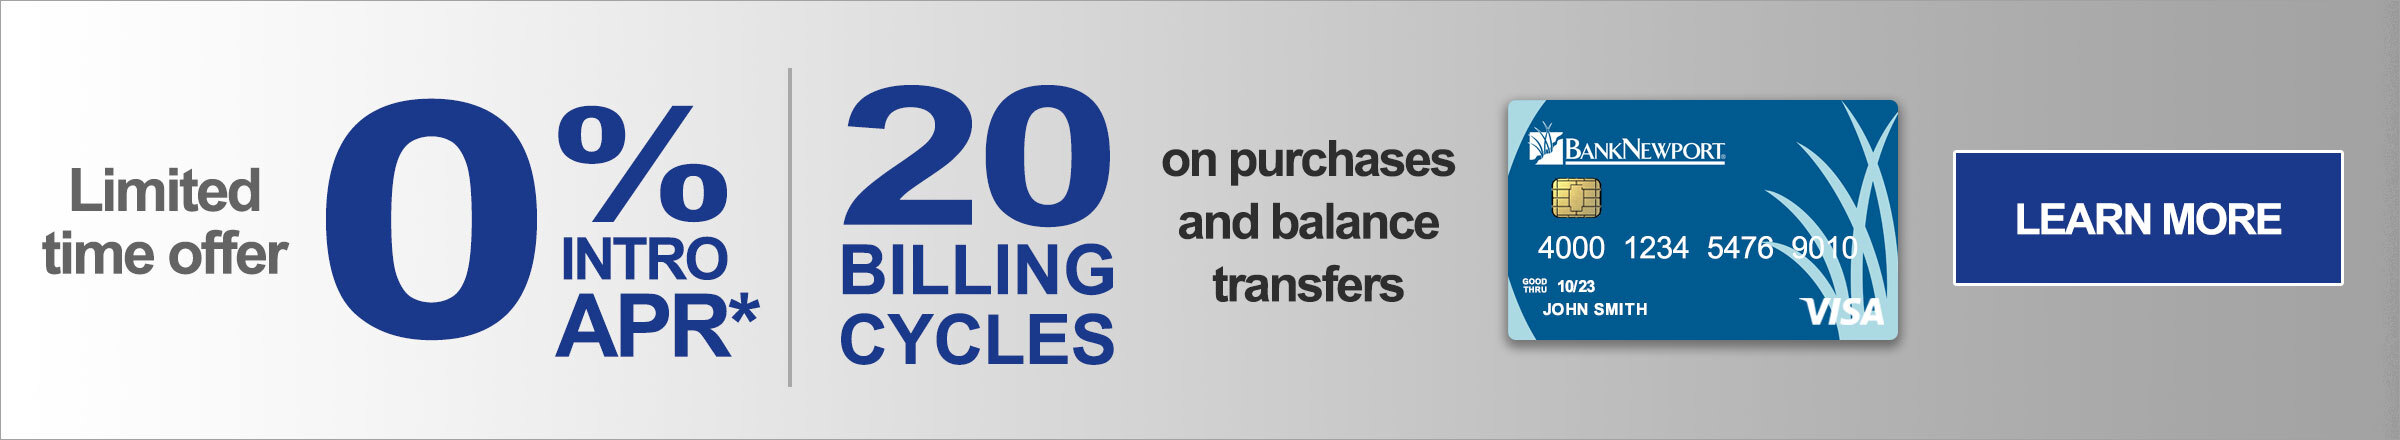 Limited Time Offer 0% intro APR* 20 Billing Cycles on purchases and balance transfers learn more